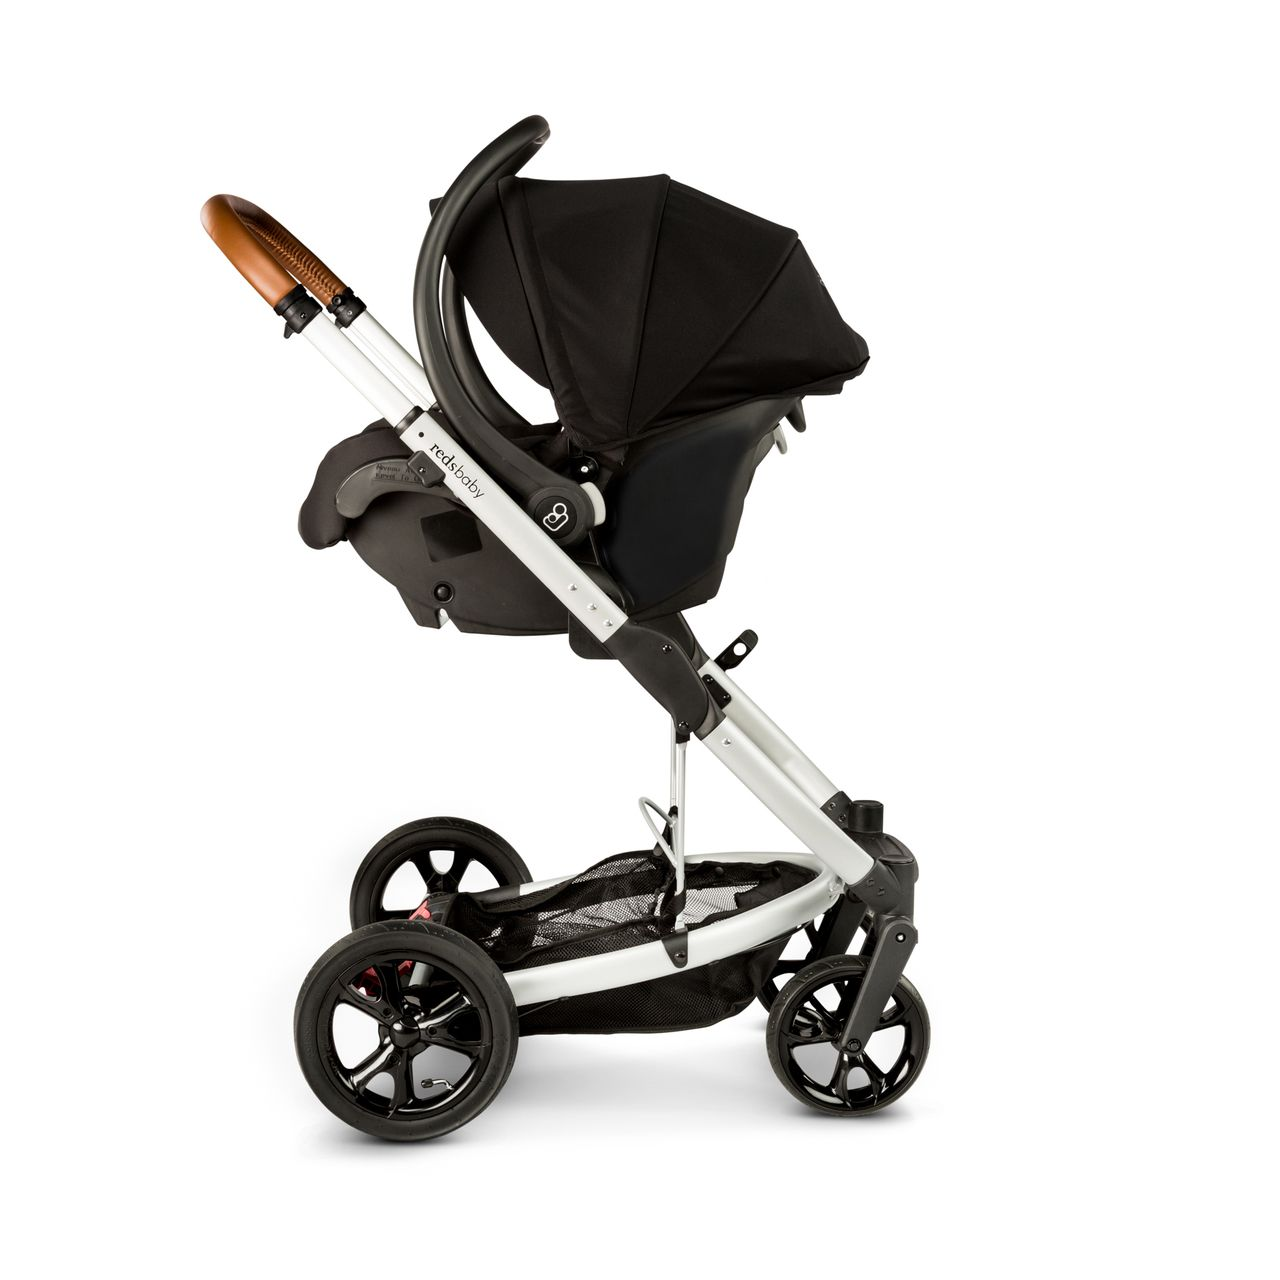 Pin on Side by side double strollers